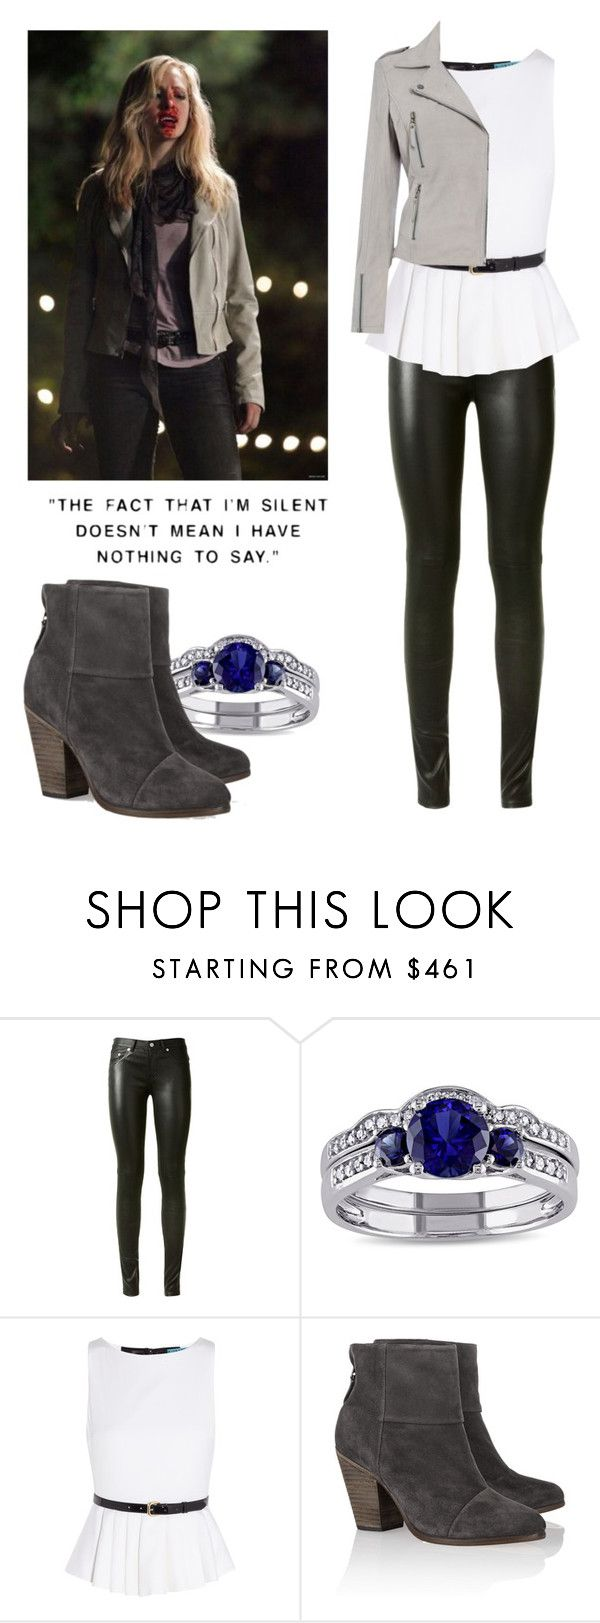 """""""Caroline Forbes - tvd / the vampire diaries"""" by shadyannon ❤ liked on Polyvore featuring Yves Saint Laurent, Miadora, Alice + Olivia, rag & bone and Linea Weekend"""